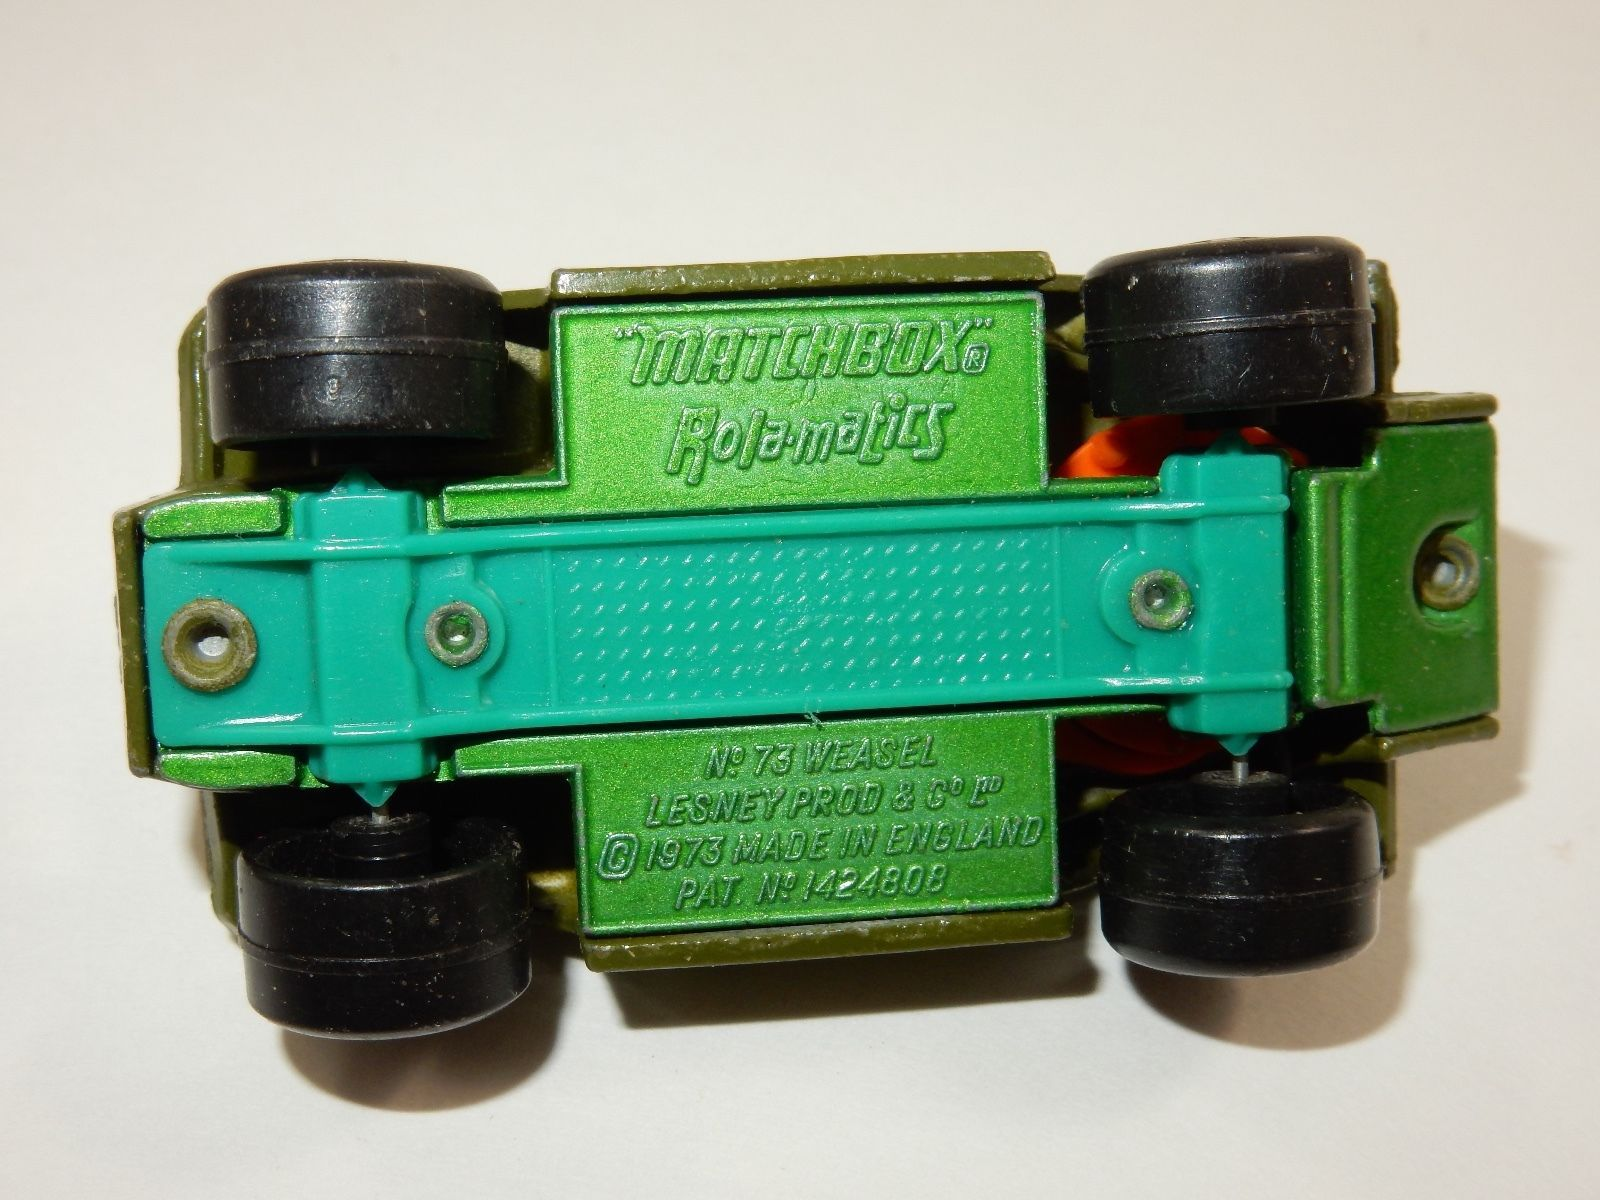 Lesney Matchbox 1973 Rolamatics No 73 Weasel Diecast Car ~ Made in England